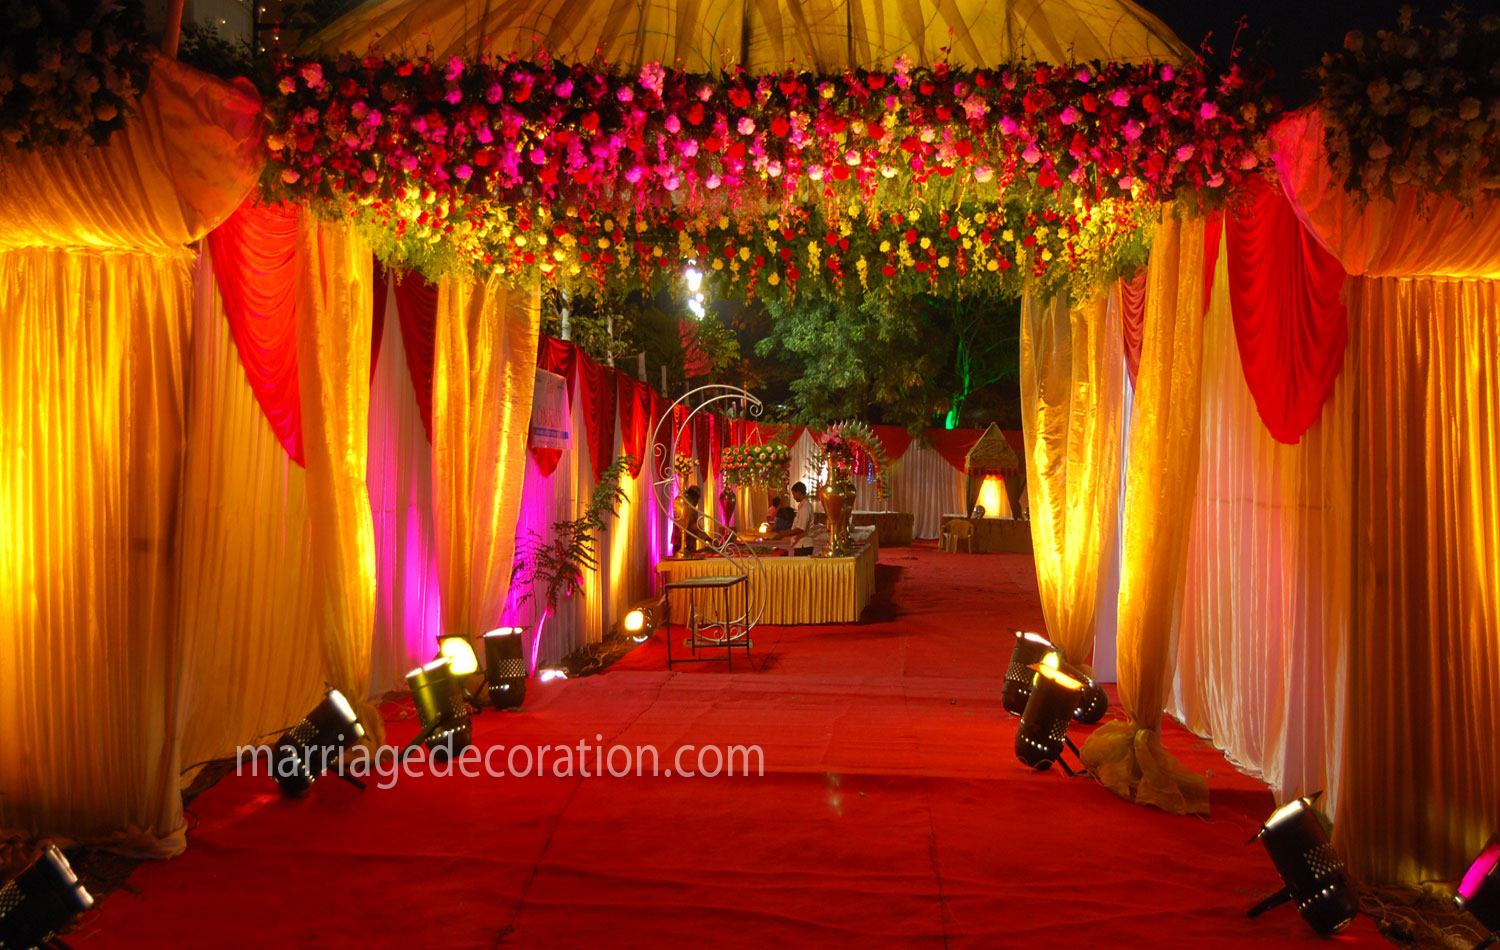 Wedding decorators romantic decoration Latest decoration ideas